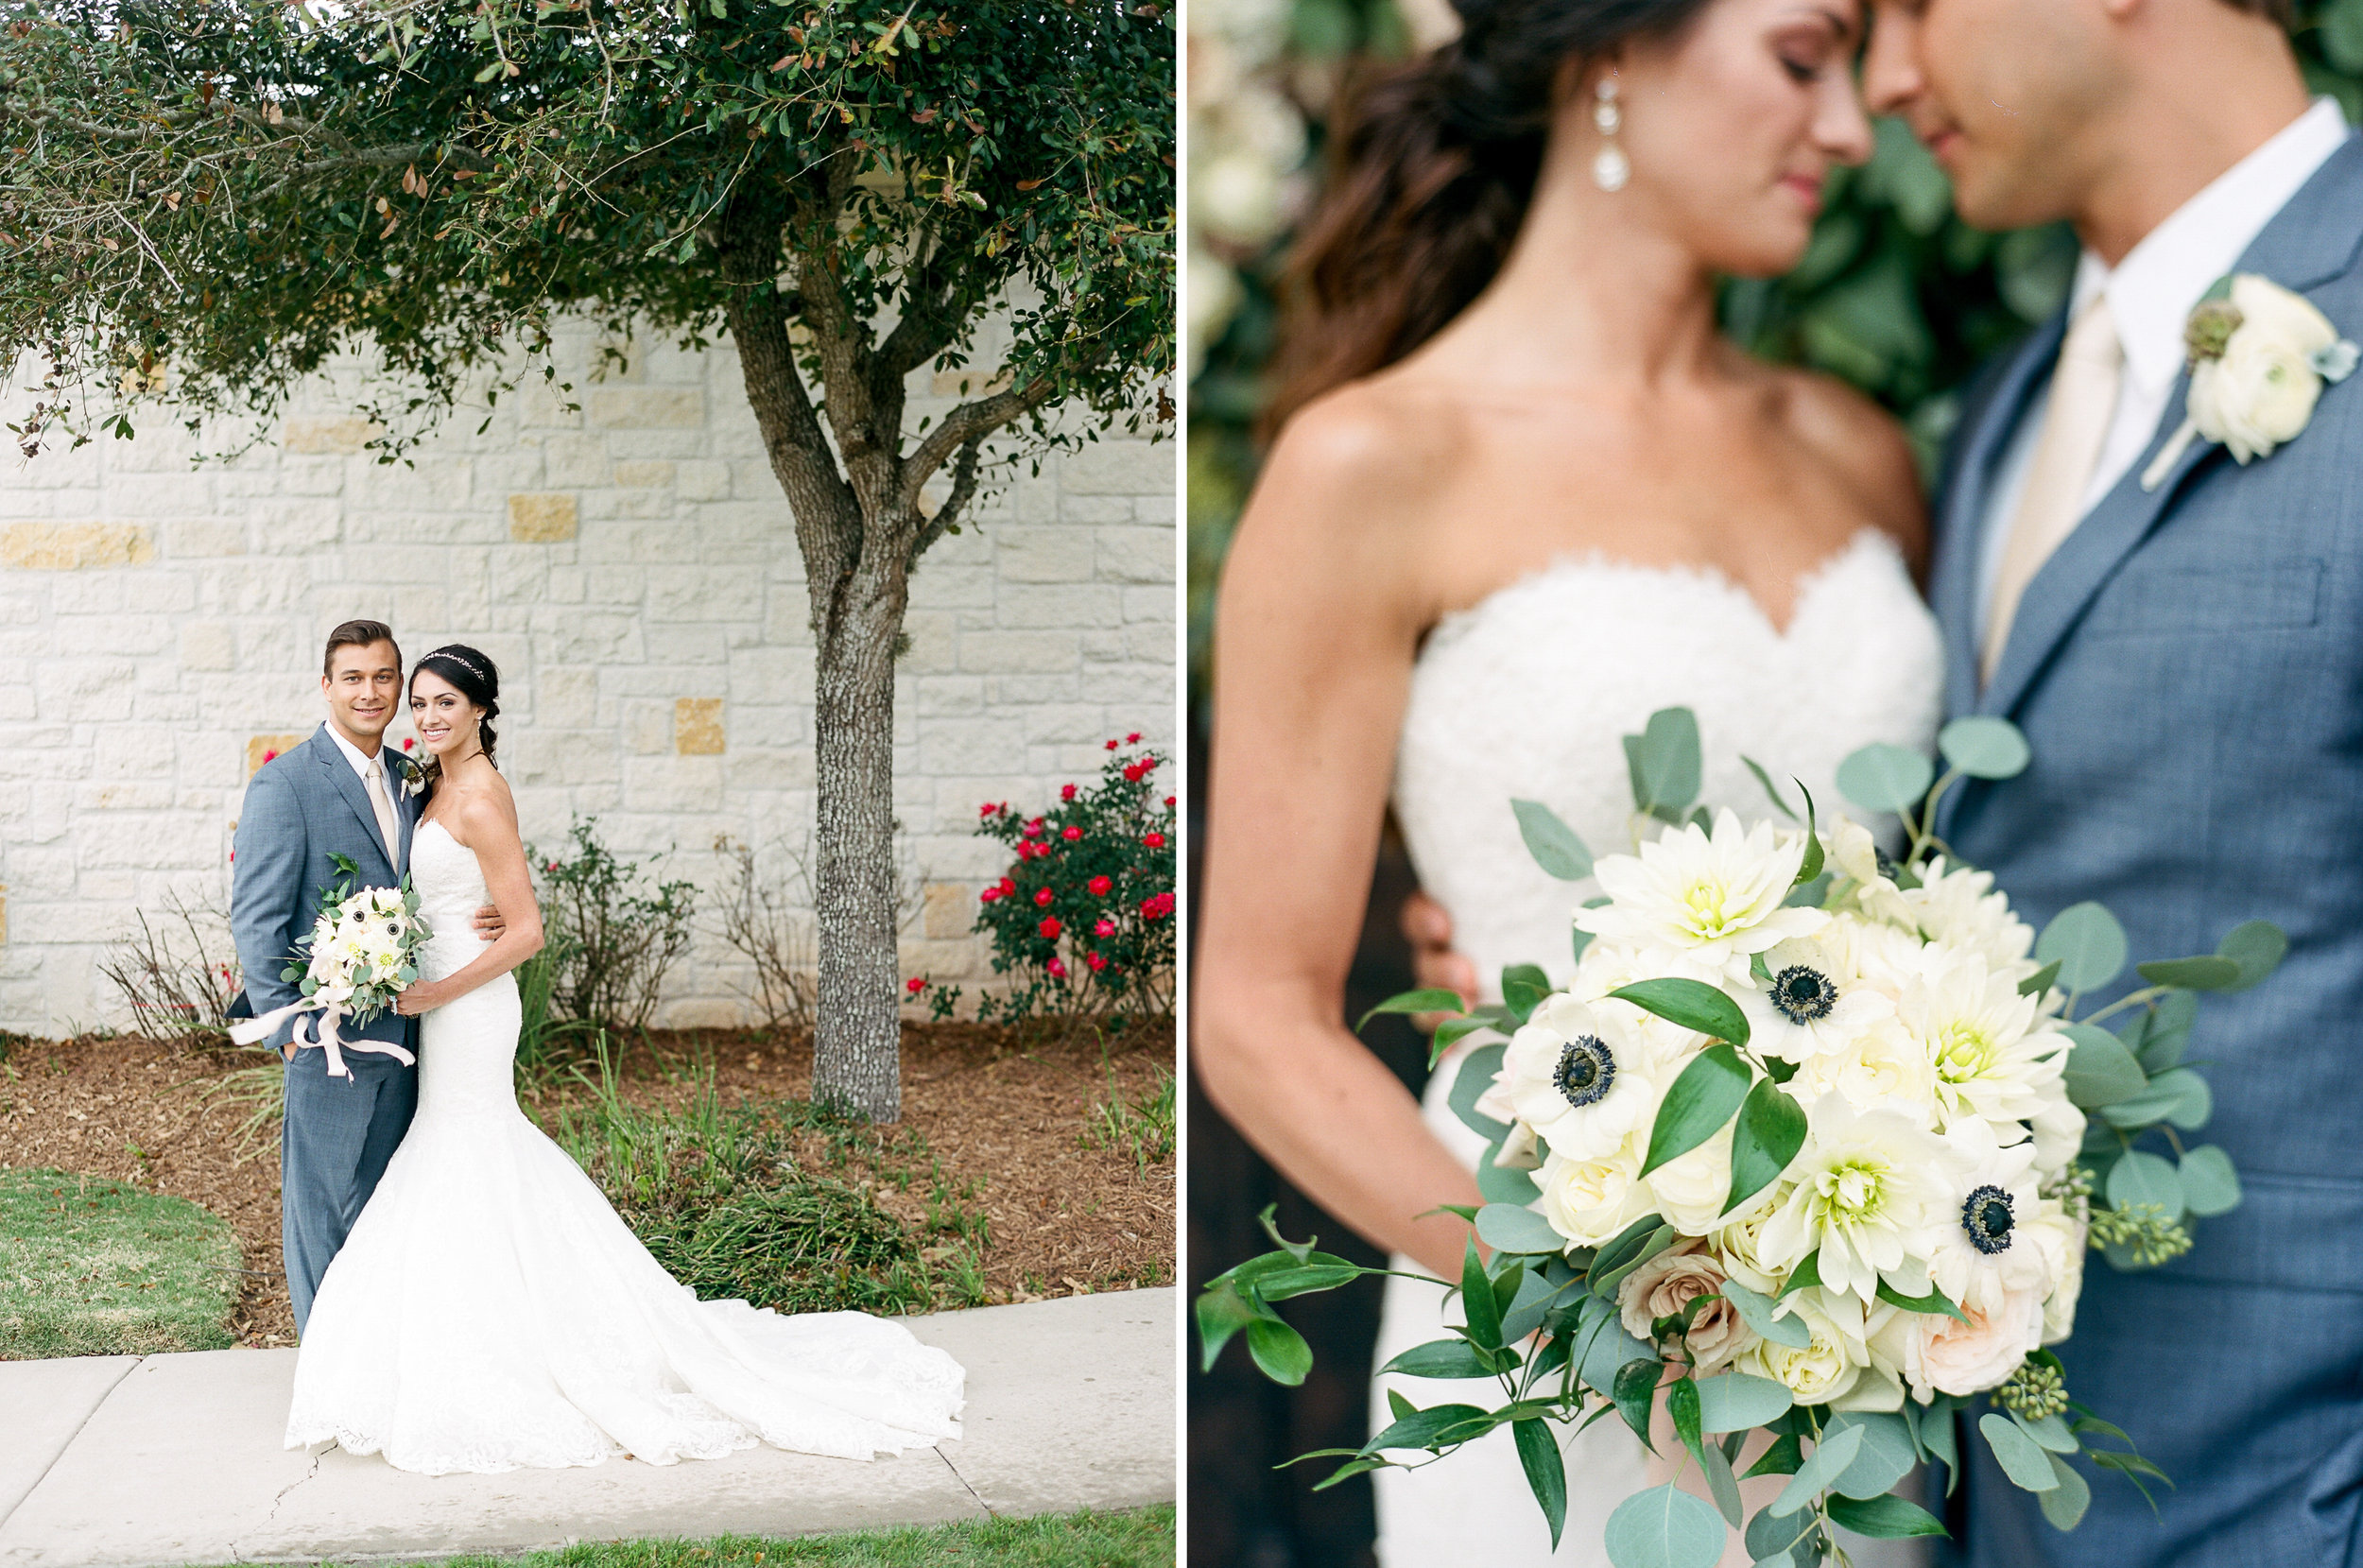 Briscoe-Manor-Houston-Wedding-Photographer-Modern-Luxury-Weddings-Dana-Fernandez-Photograpy-Fine-Art-Photographer-Houston-Film-Destination-PNW-Wedding-Photographer-110.jpg